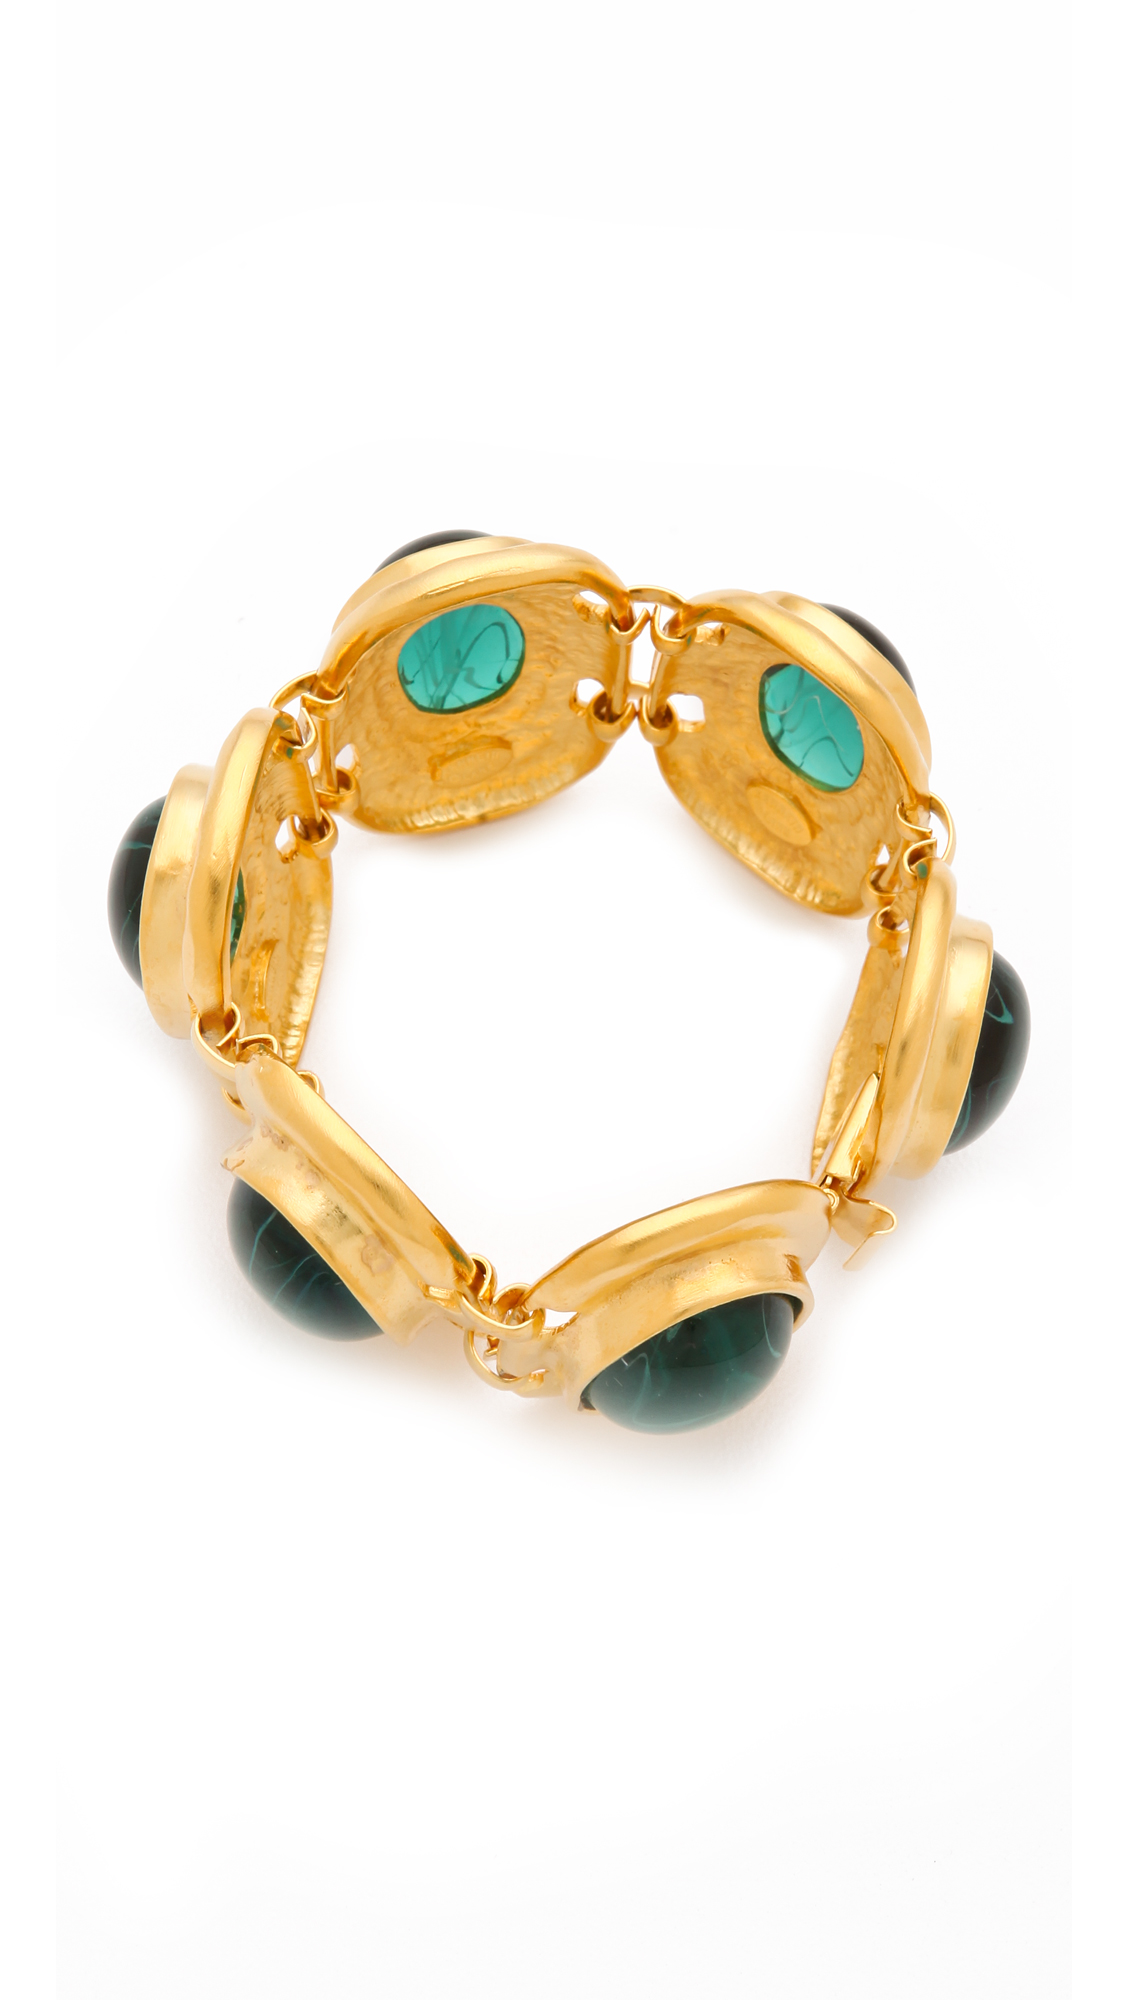 Kenneth Jay Lane Emerald Cabochon Bracelet Emerald